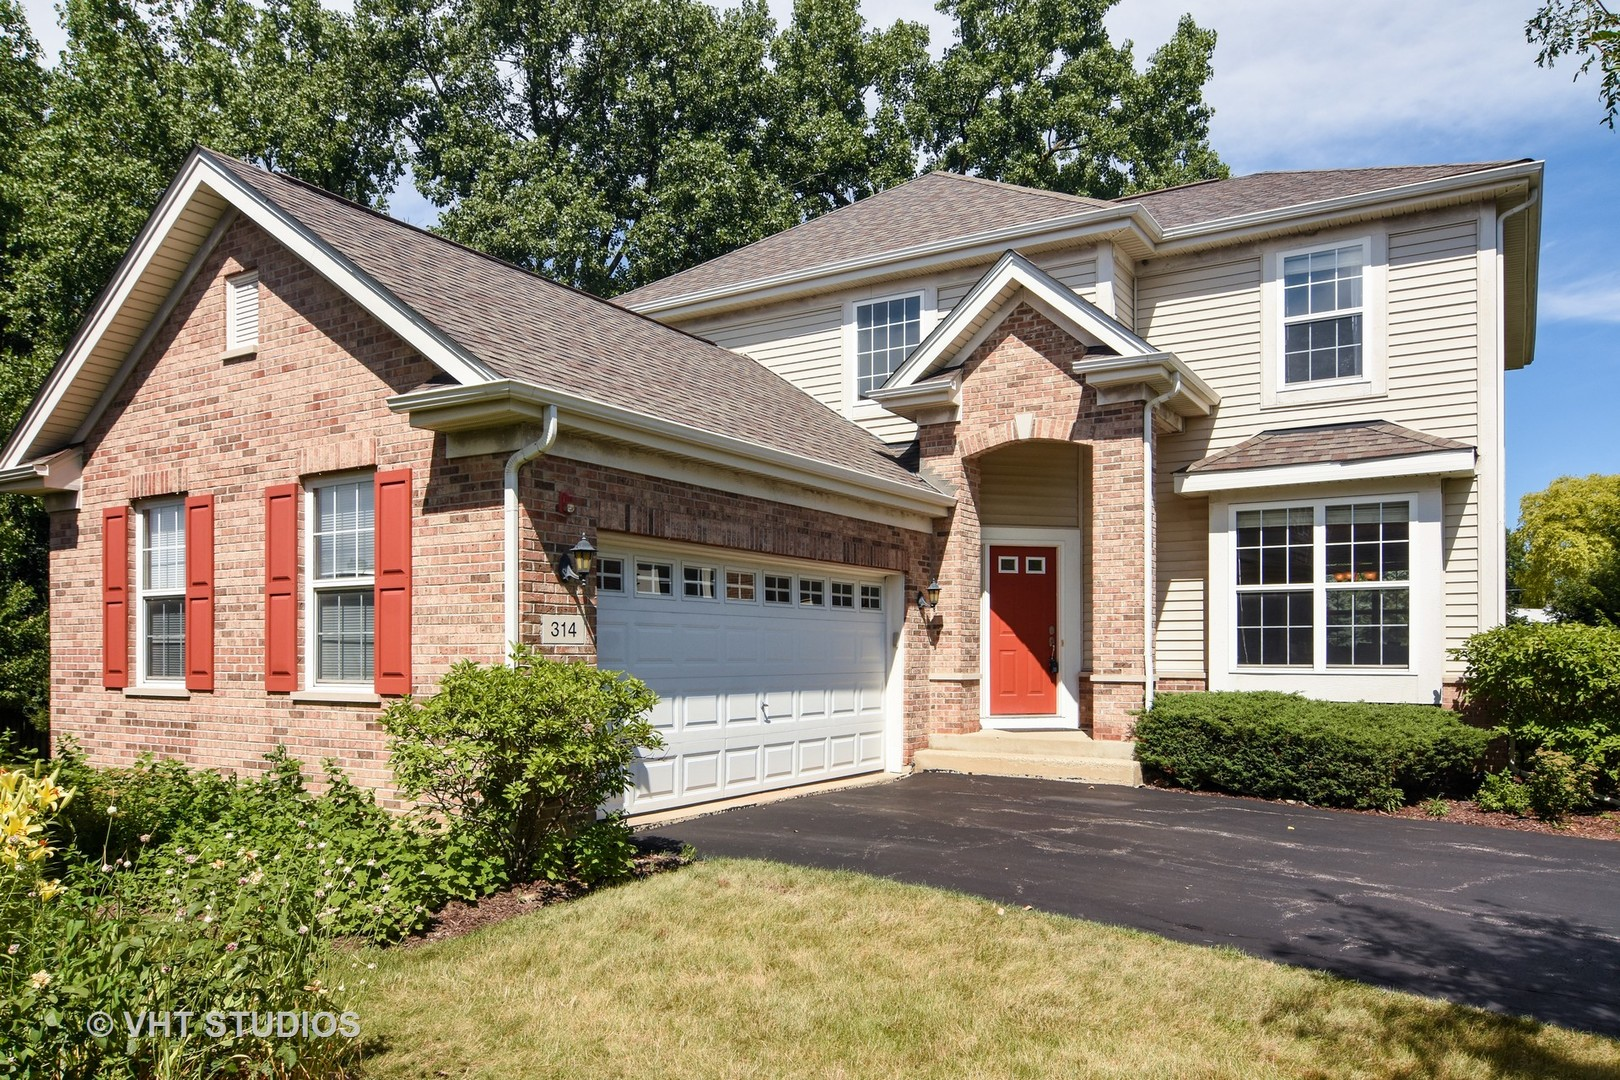 314 Seaton Court, Lake Zurich, Illinois 60047